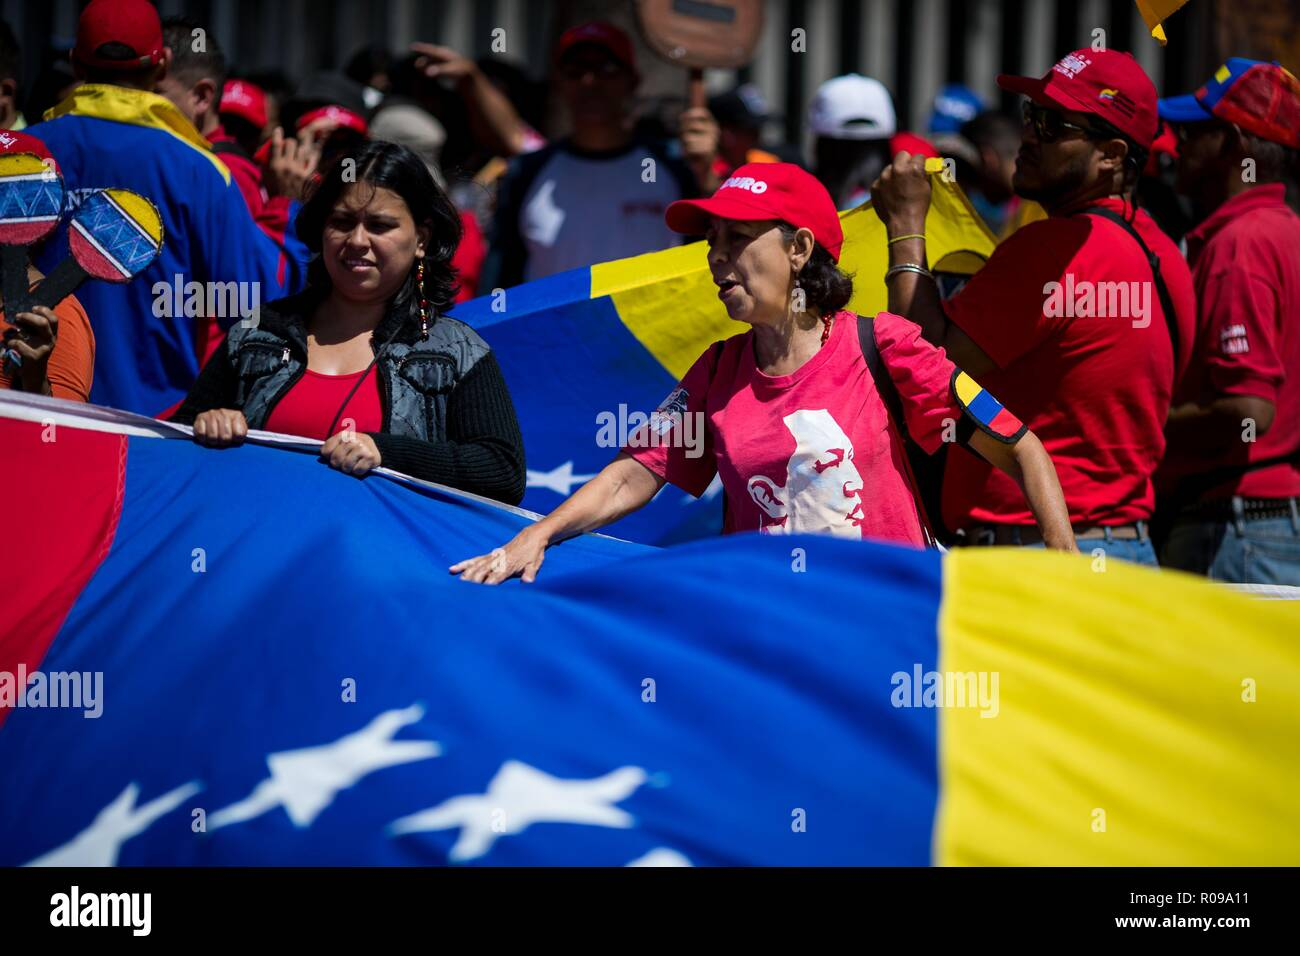 Caracas, Venezuela. 02nd Nov, 2018. Sympathizers of Nicolas Maduro's Government participate in a protest against imperialism and in honor of Venezuelan folk singer Ali Primera, in Caracas, Venezuela, 02 November 2018. Credit: Miguel Gutierrez/EFE/Alamy Live News - Stock Image